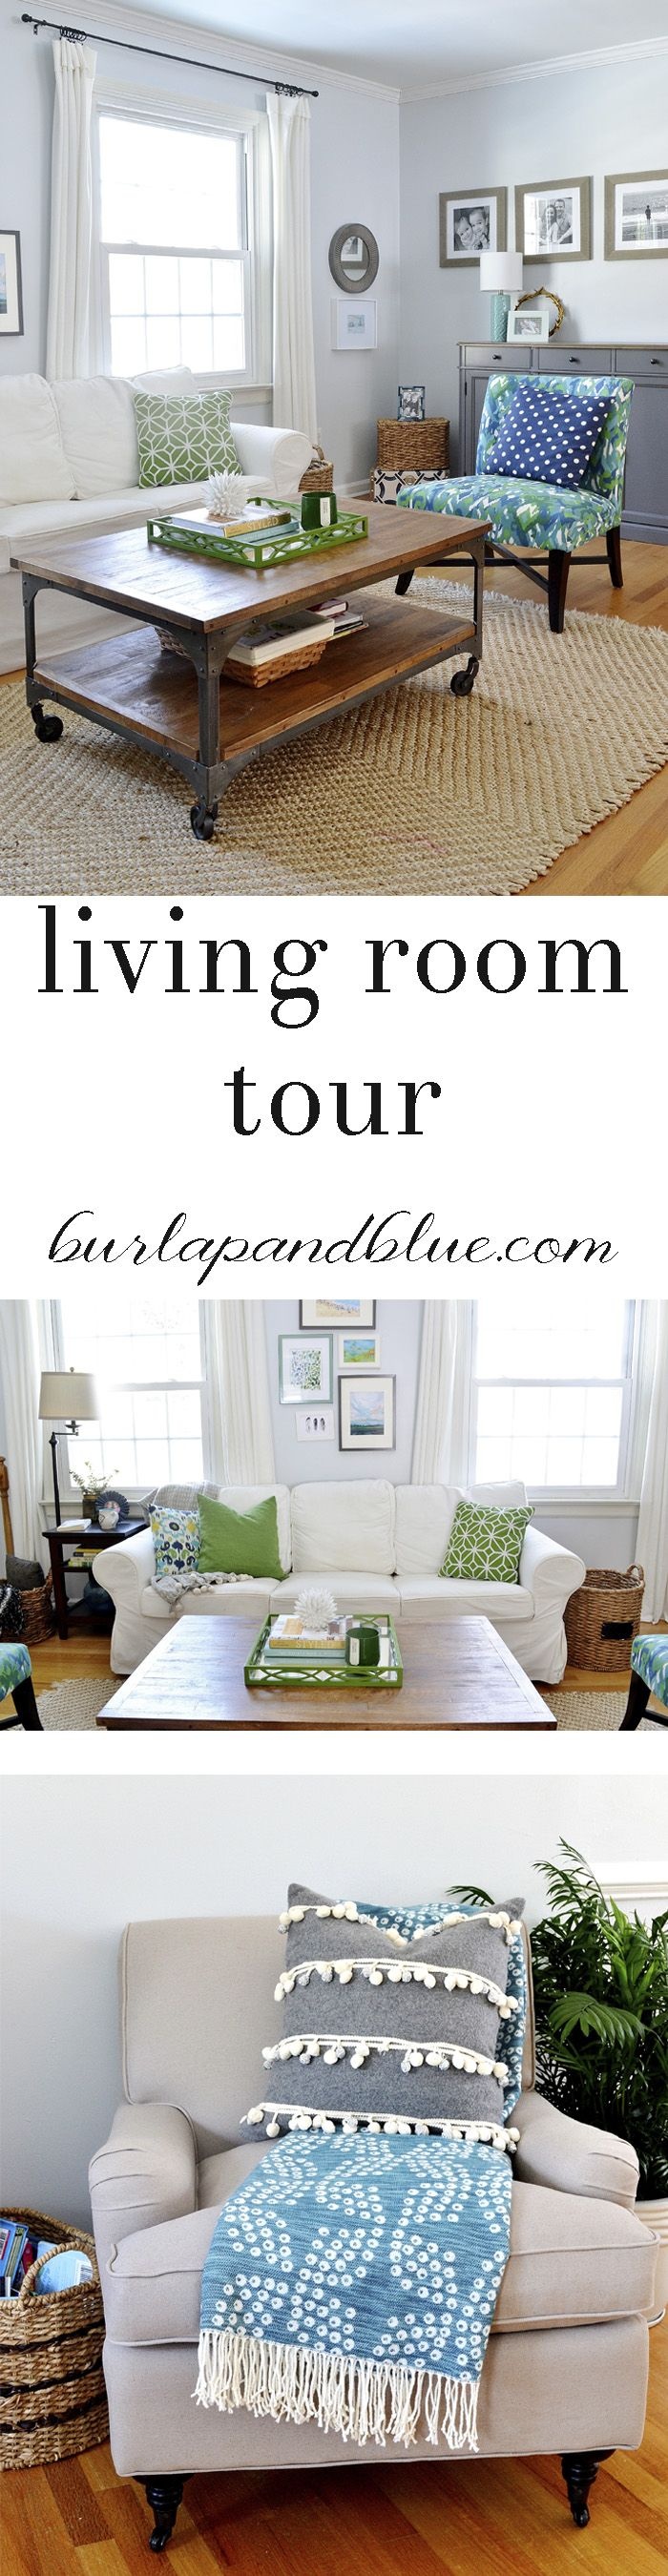 DIY home decor ideas-our updated living room